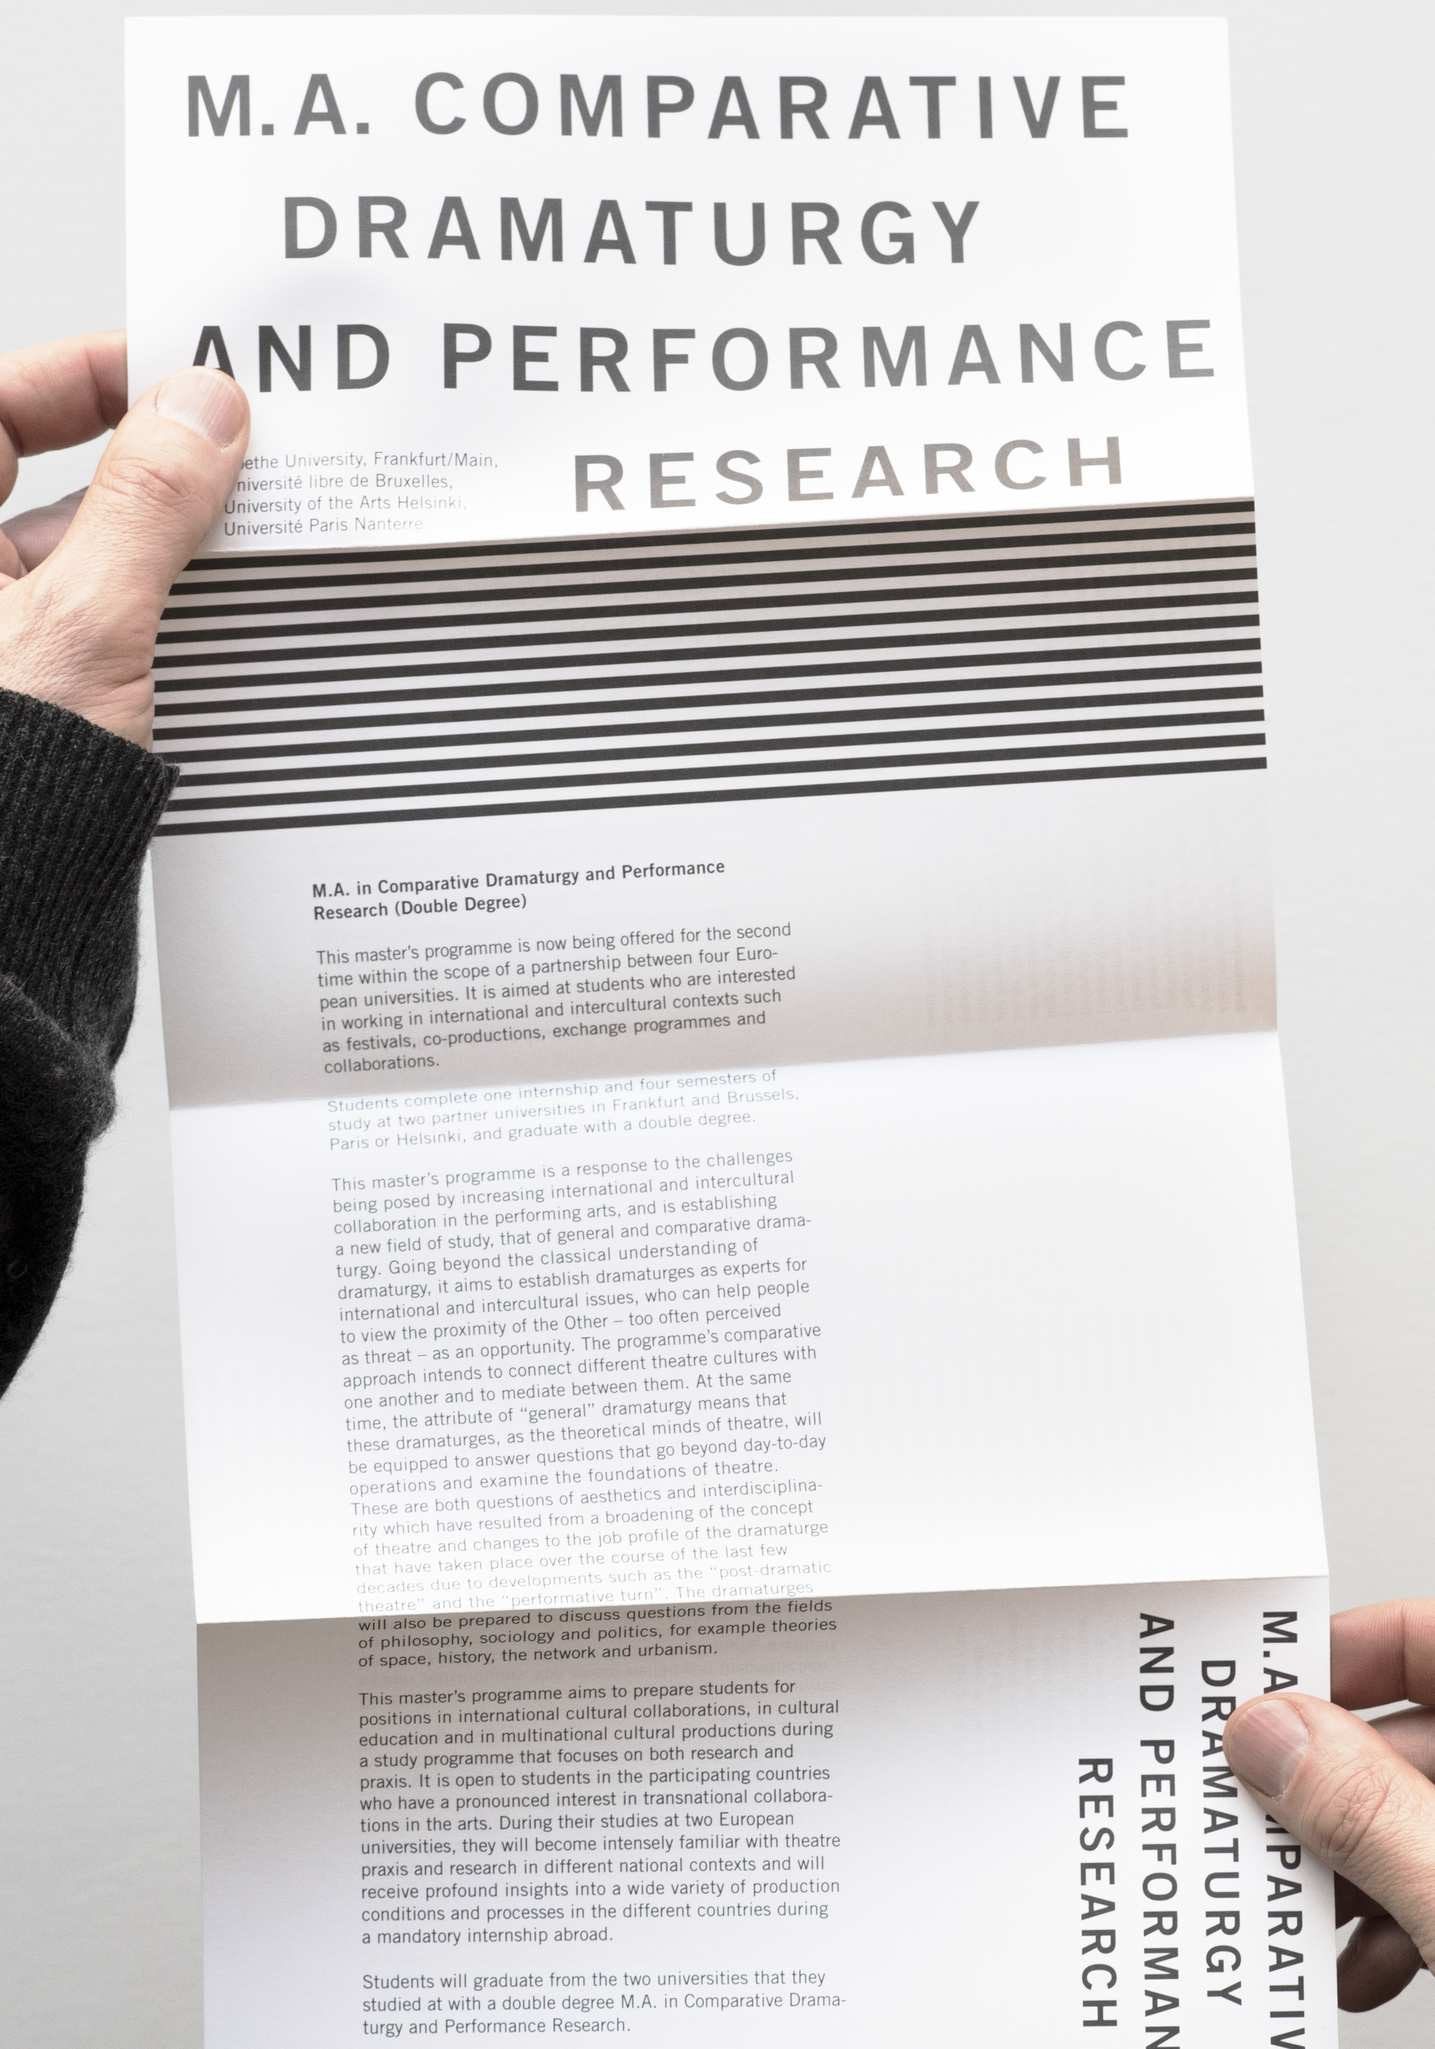 ma-comparative-dramaturgy-and-performance-research-flyer-3-1435x2049px